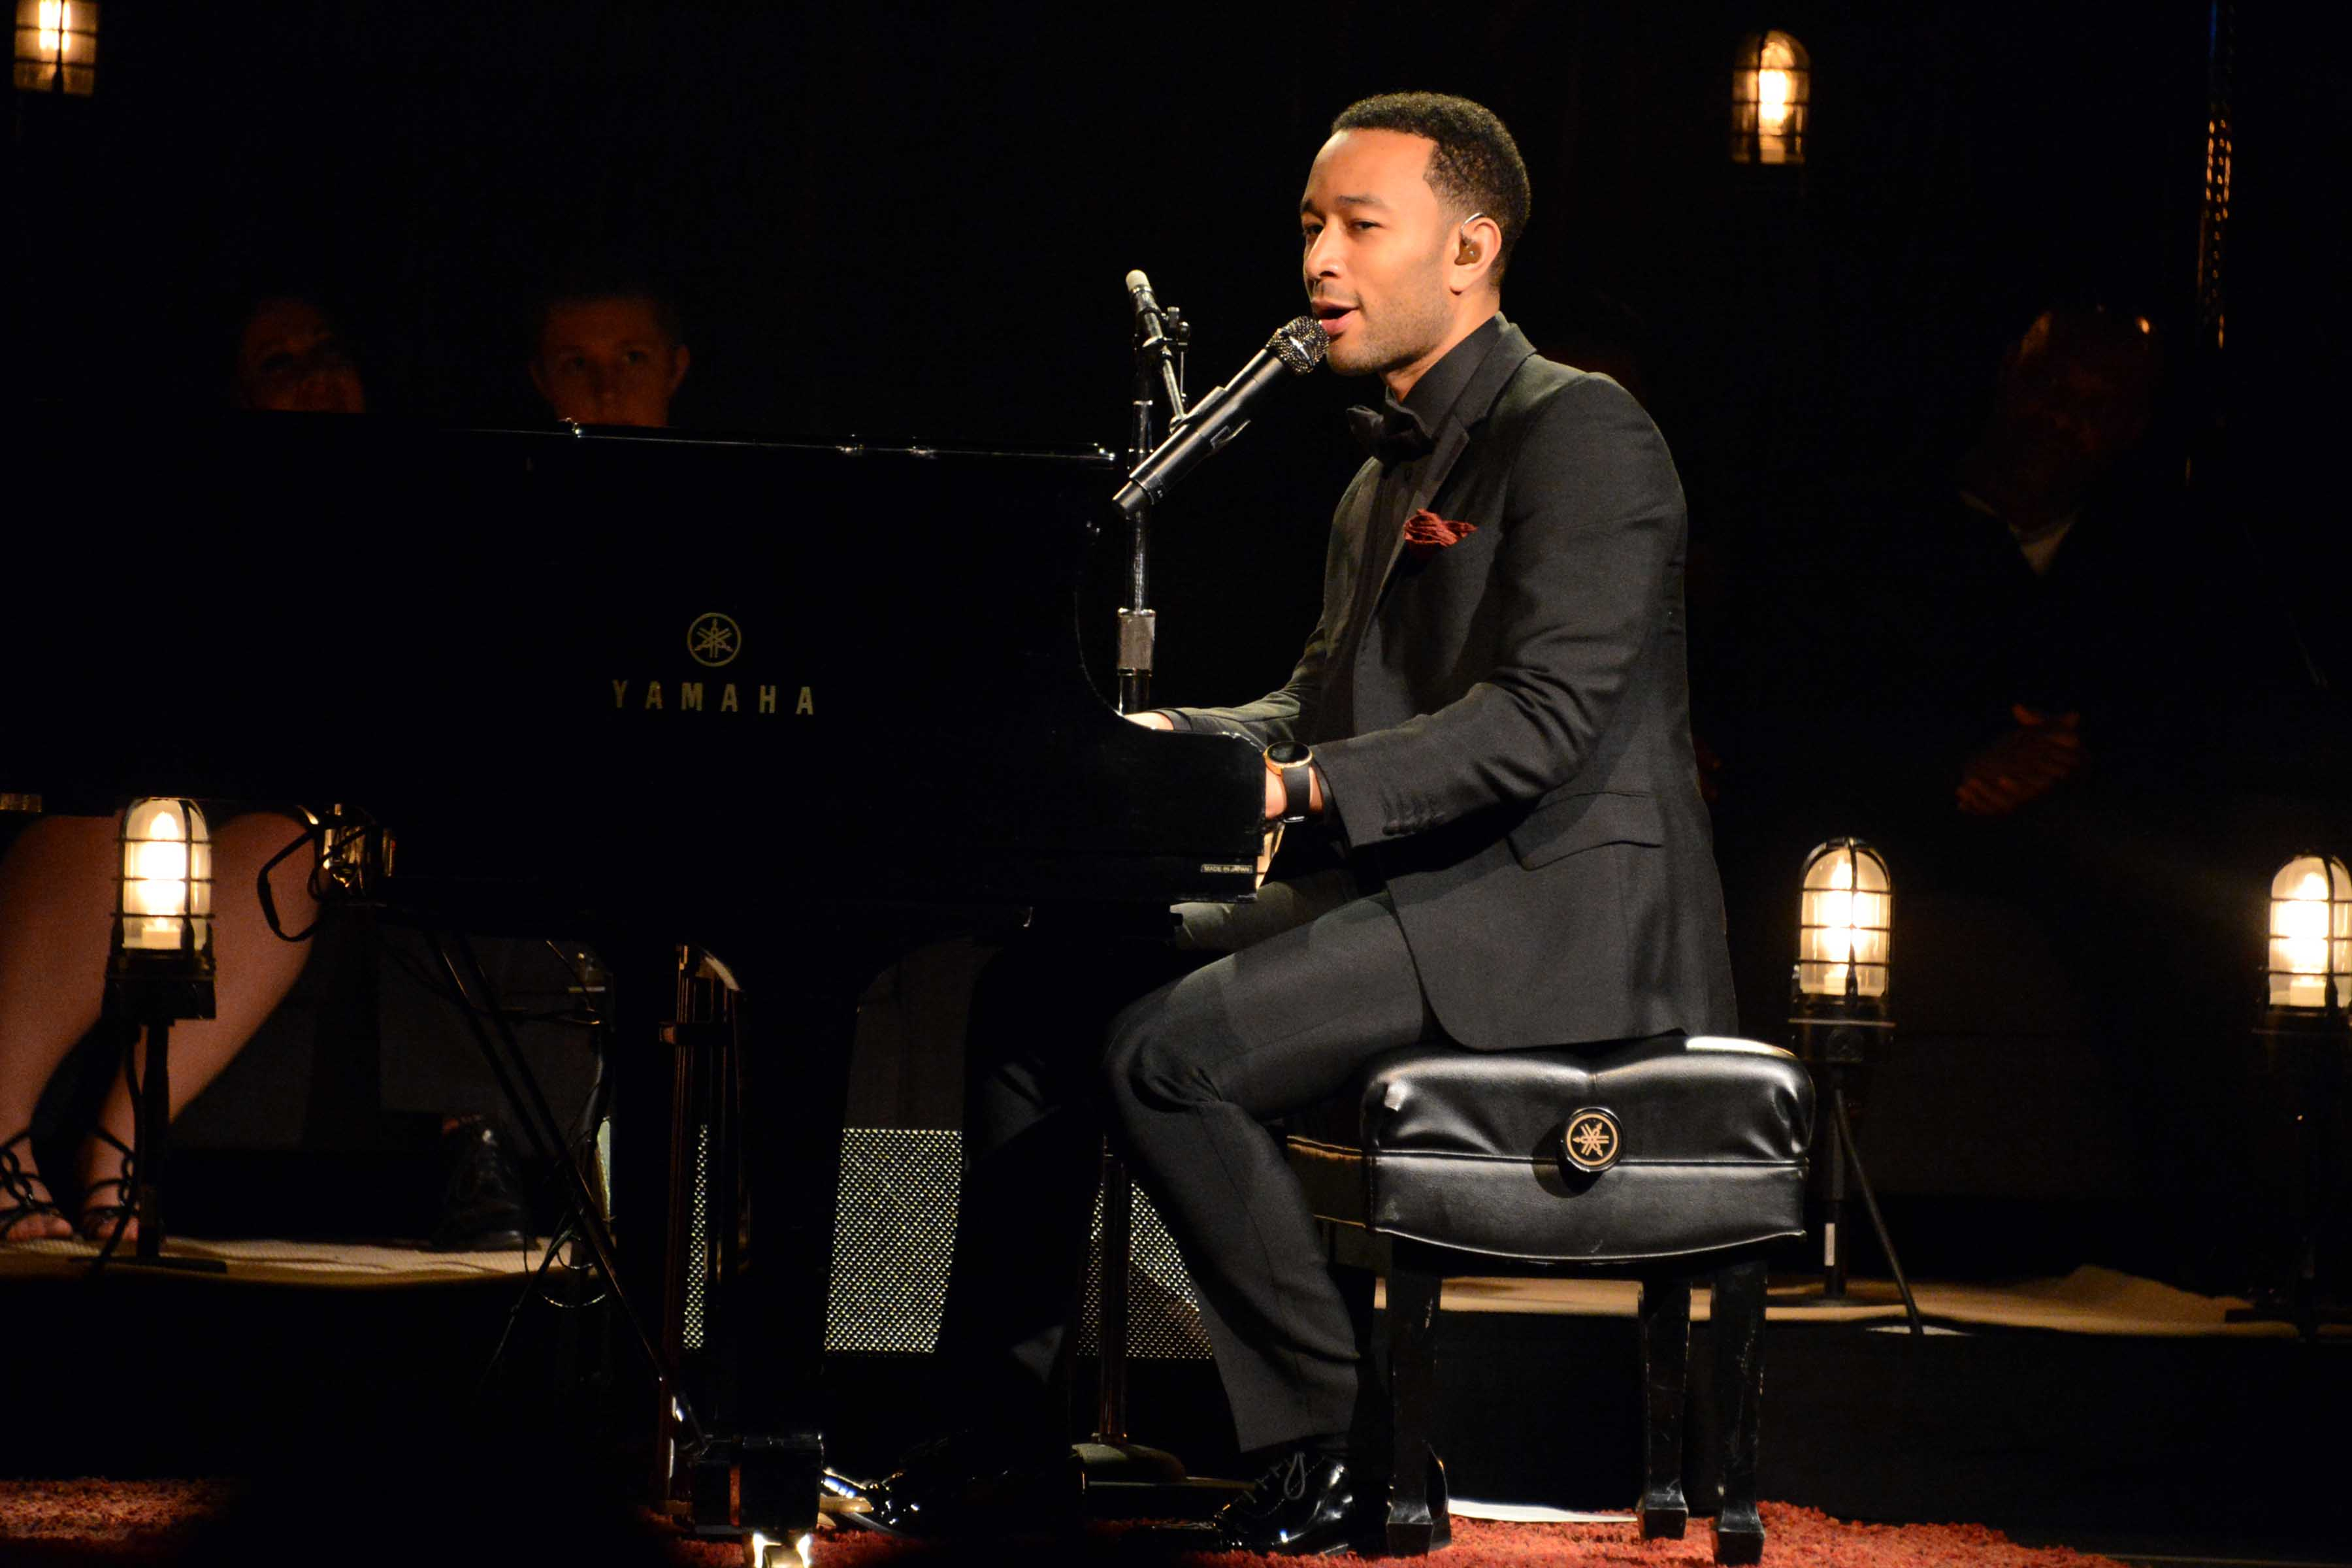 PHOTOS: John Legend, Chrissy Teigen Head To Atlantic City ...